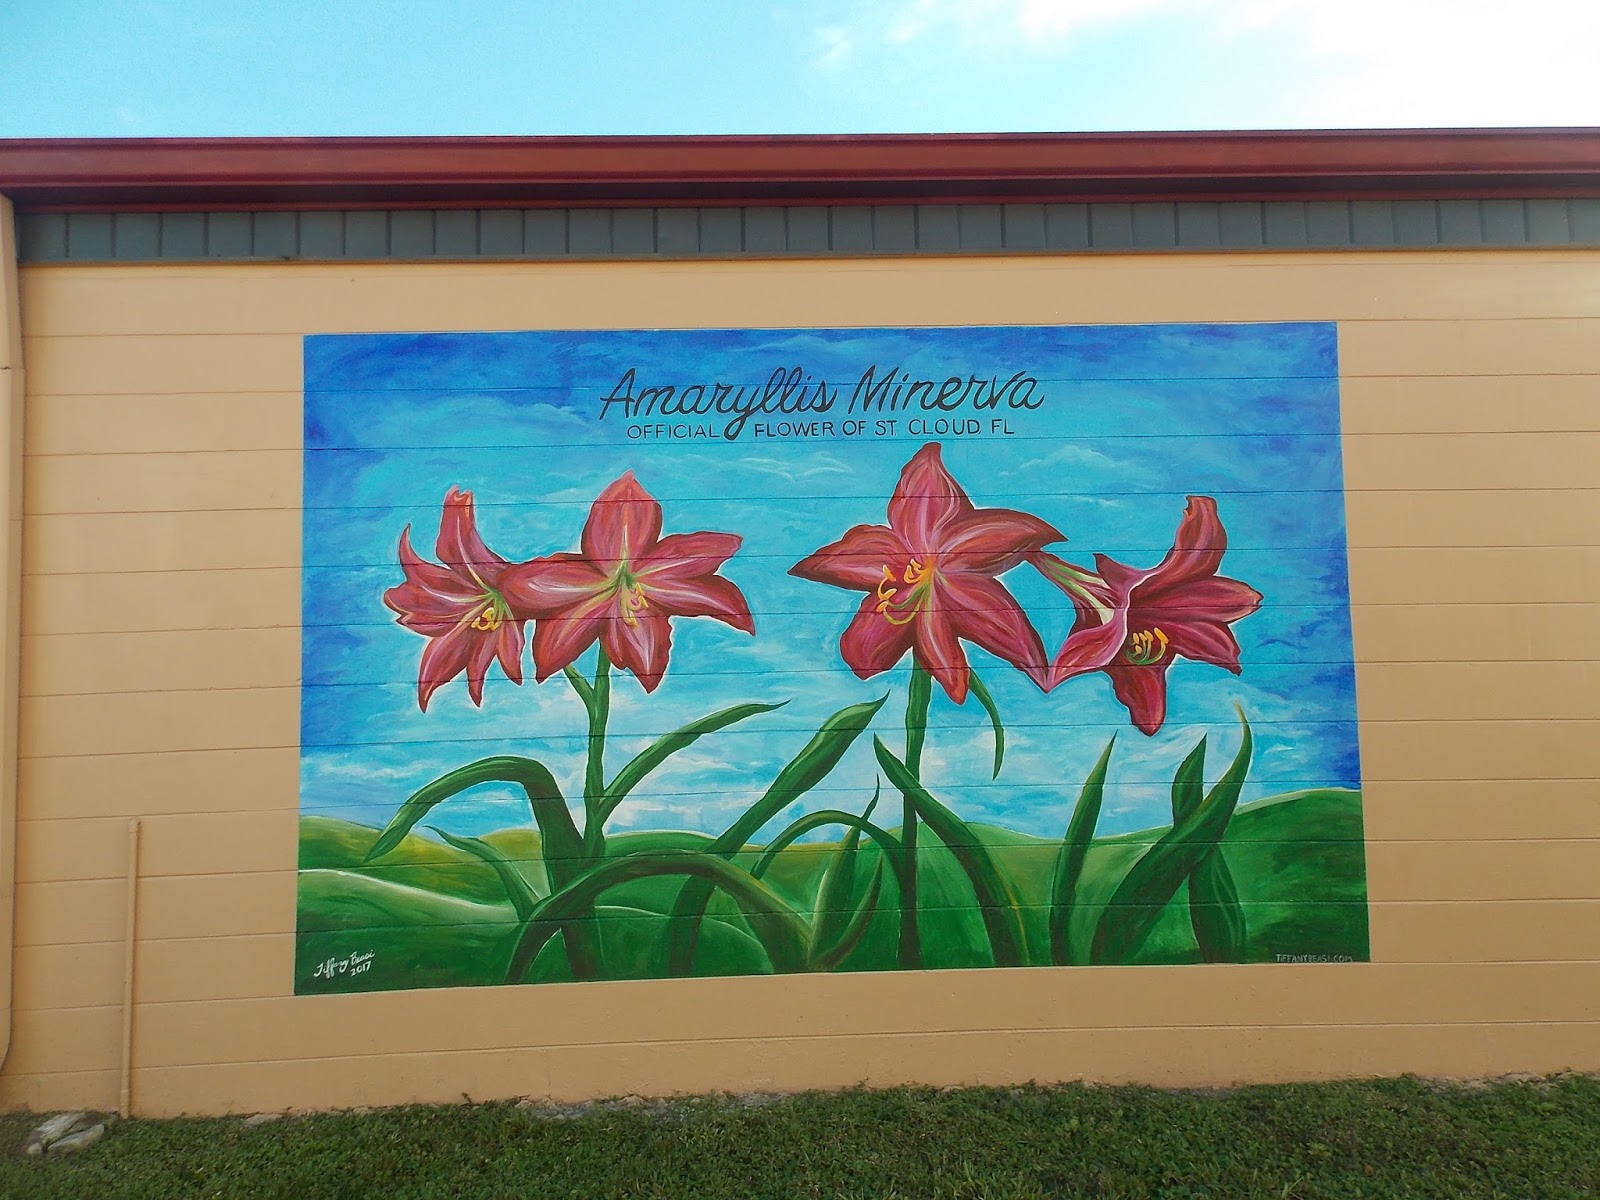 It Is A Small Town Noted For Quite A Few Murals Which Can Be Found On The Outside  Walls Of Its Downtown Buildings. Pictured Below Is One Of The First Ones ... Part 95